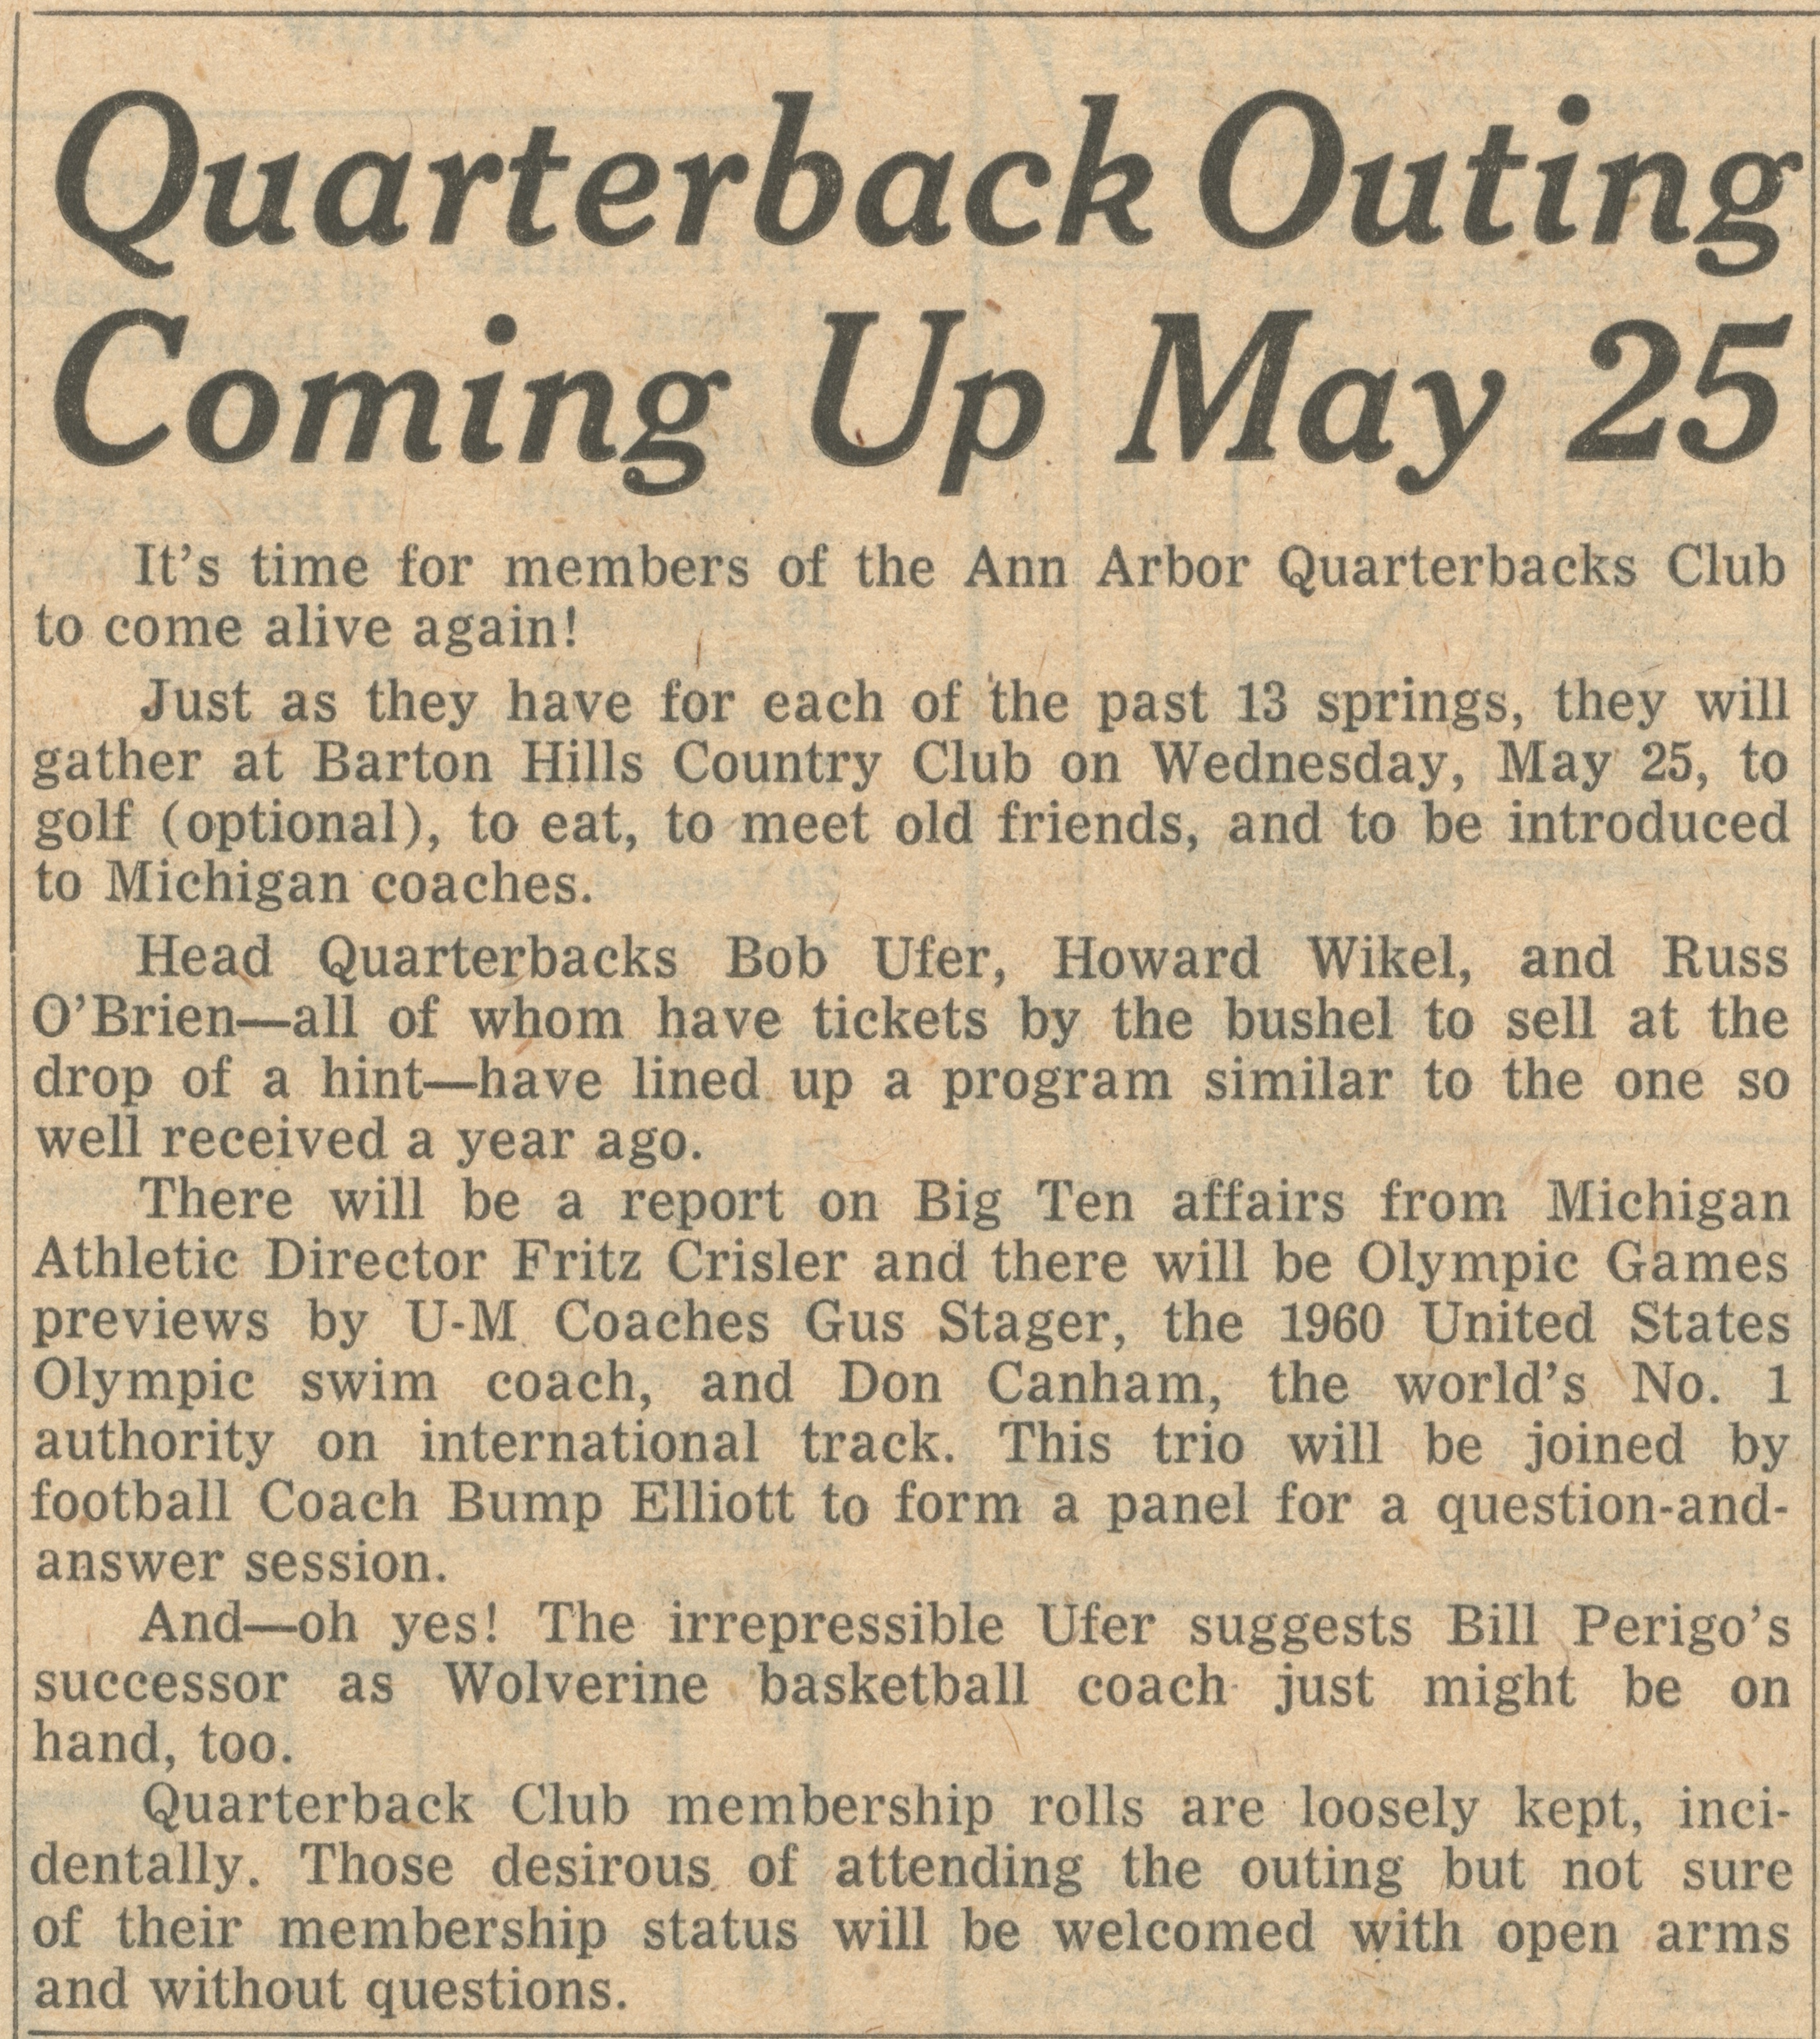 Quarterback Outing Coming Up May 25 image